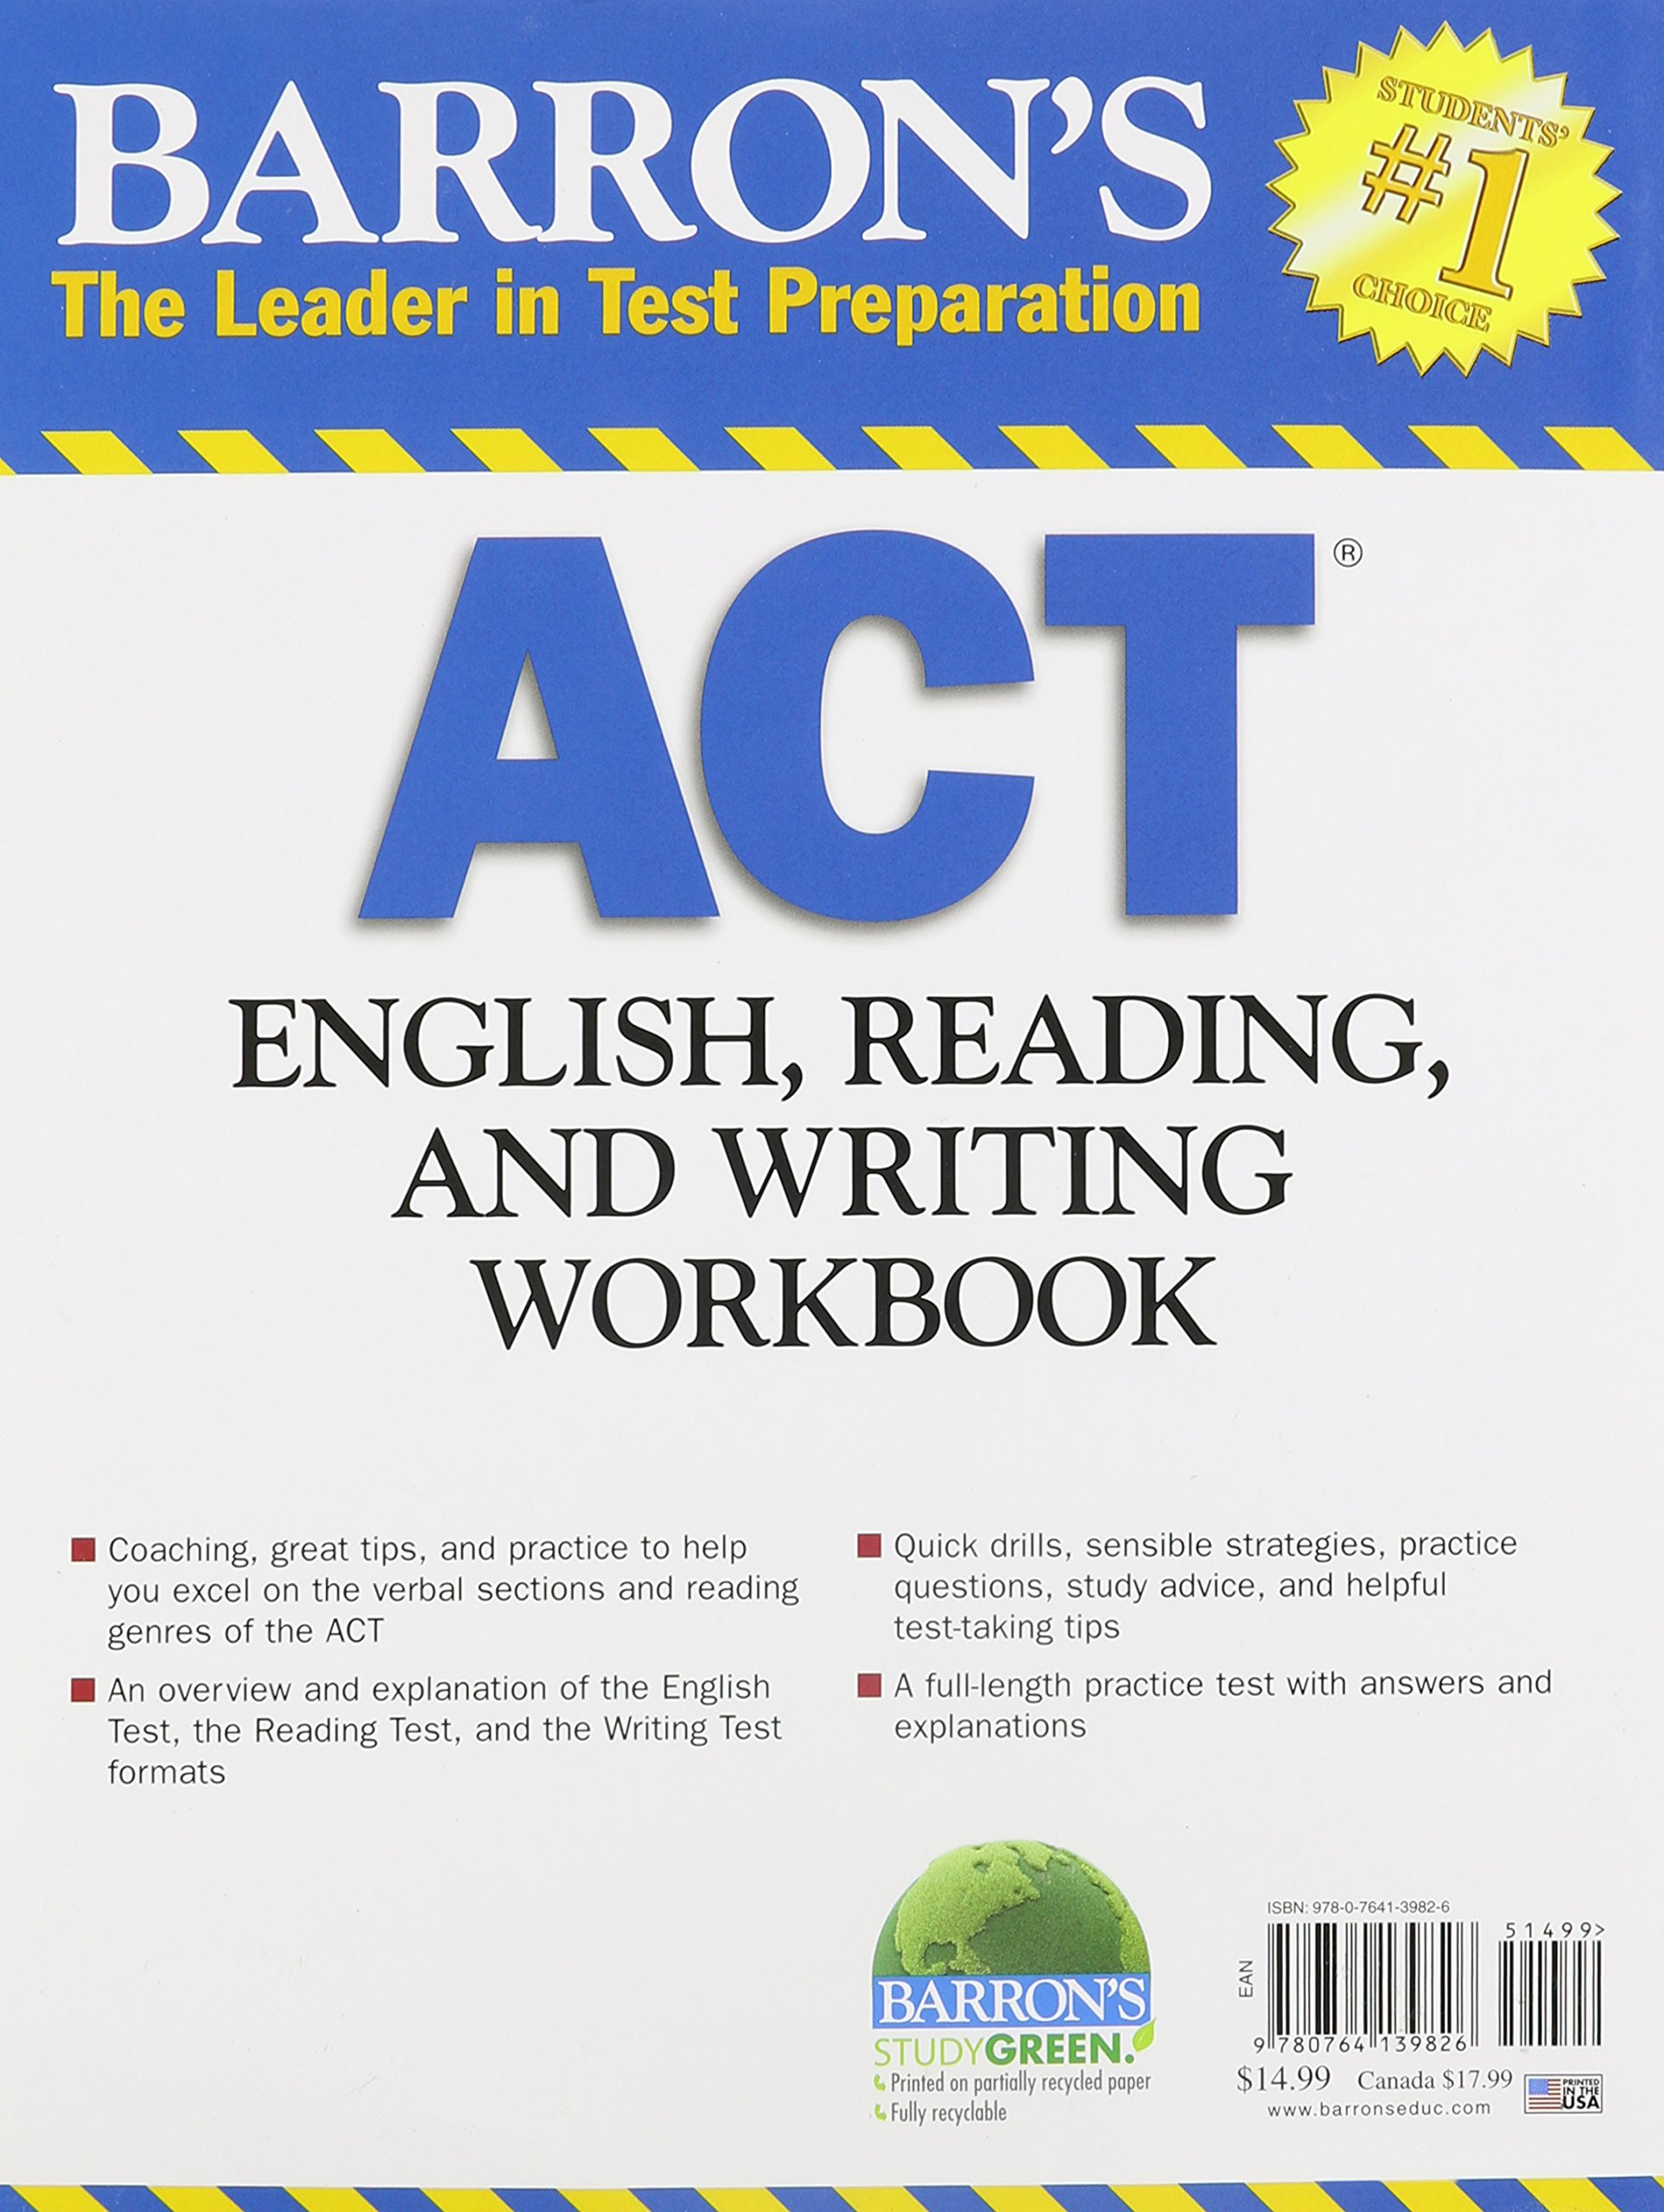 Barrons act english reading and writing workbook linda barrons act english reading and writing workbook linda carnevale ma 9780764139826 amazon books fandeluxe Gallery